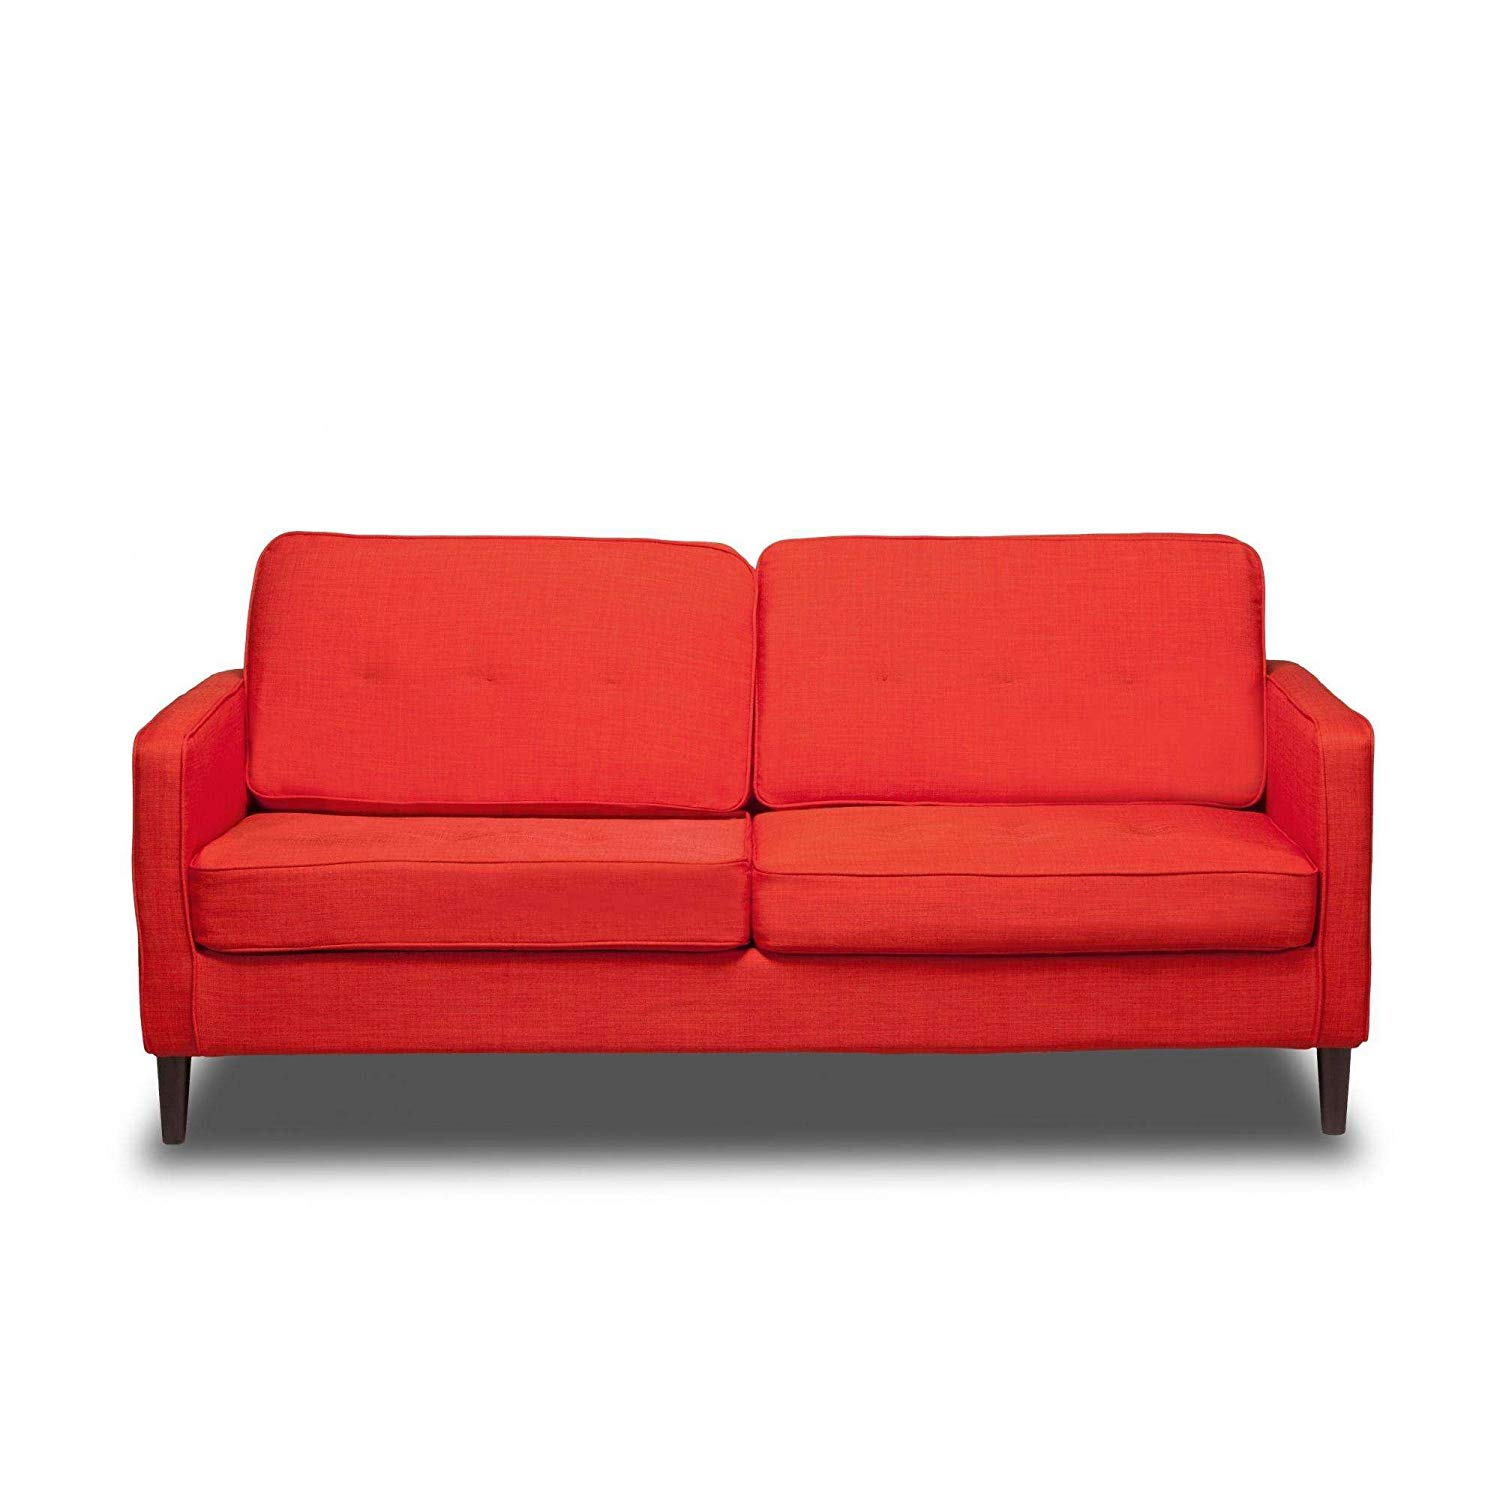 """Safron 66"""" Upholstered Sofa, Pocket Coil Seat Cushions, Solid Wood Legs, Hardwood Solids, Metal Seat Frame, Removable Slip Cover, Bundle with Our Expert Guide with Tips for Home Arrangement"""